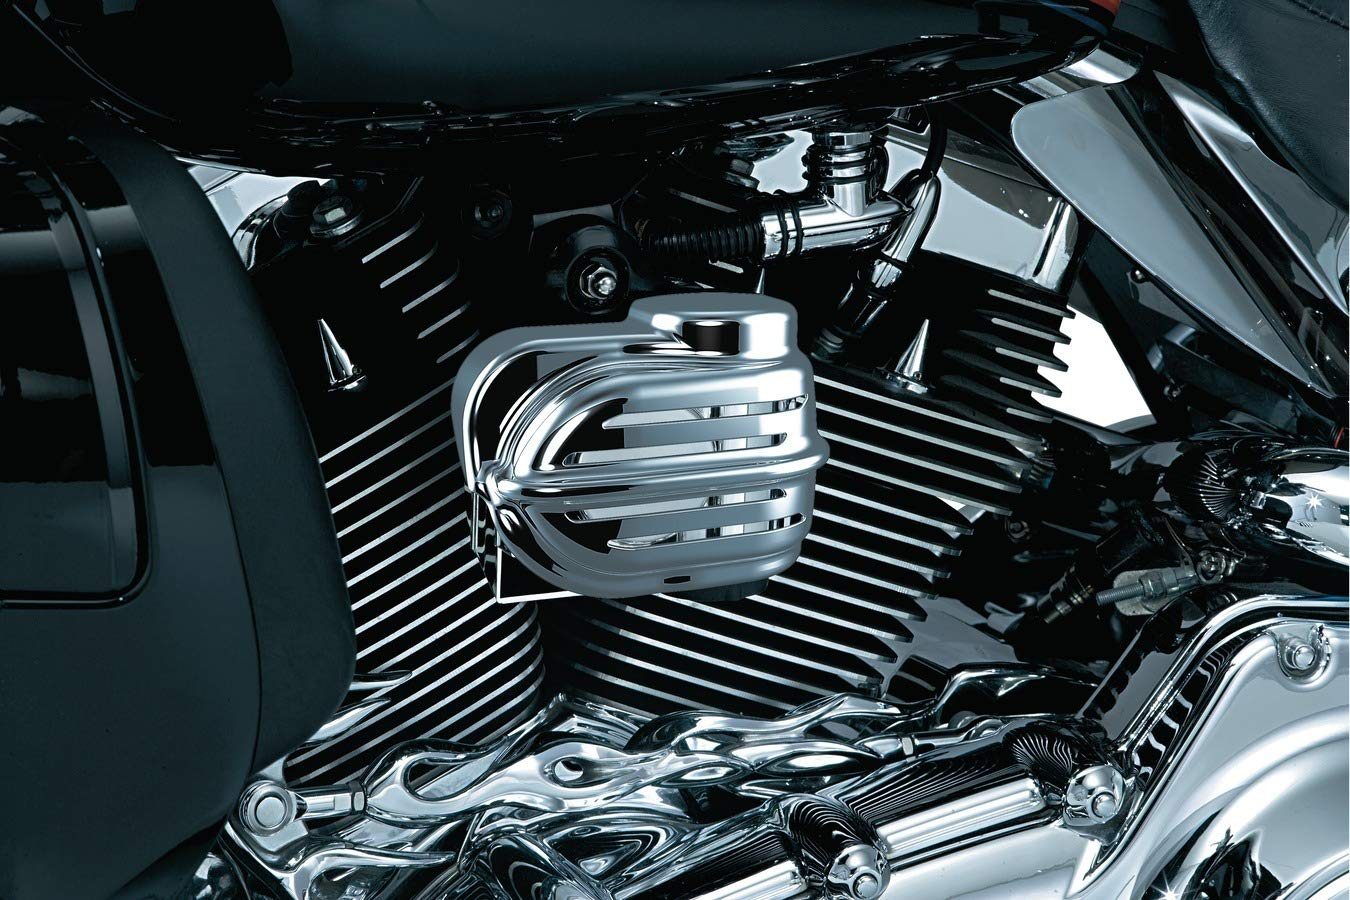 Kuryakyn Air Horn Kits Wolo Bad Boy Compatible for Harley-Davidson Motorcycle - Chrome by Kuryakyn